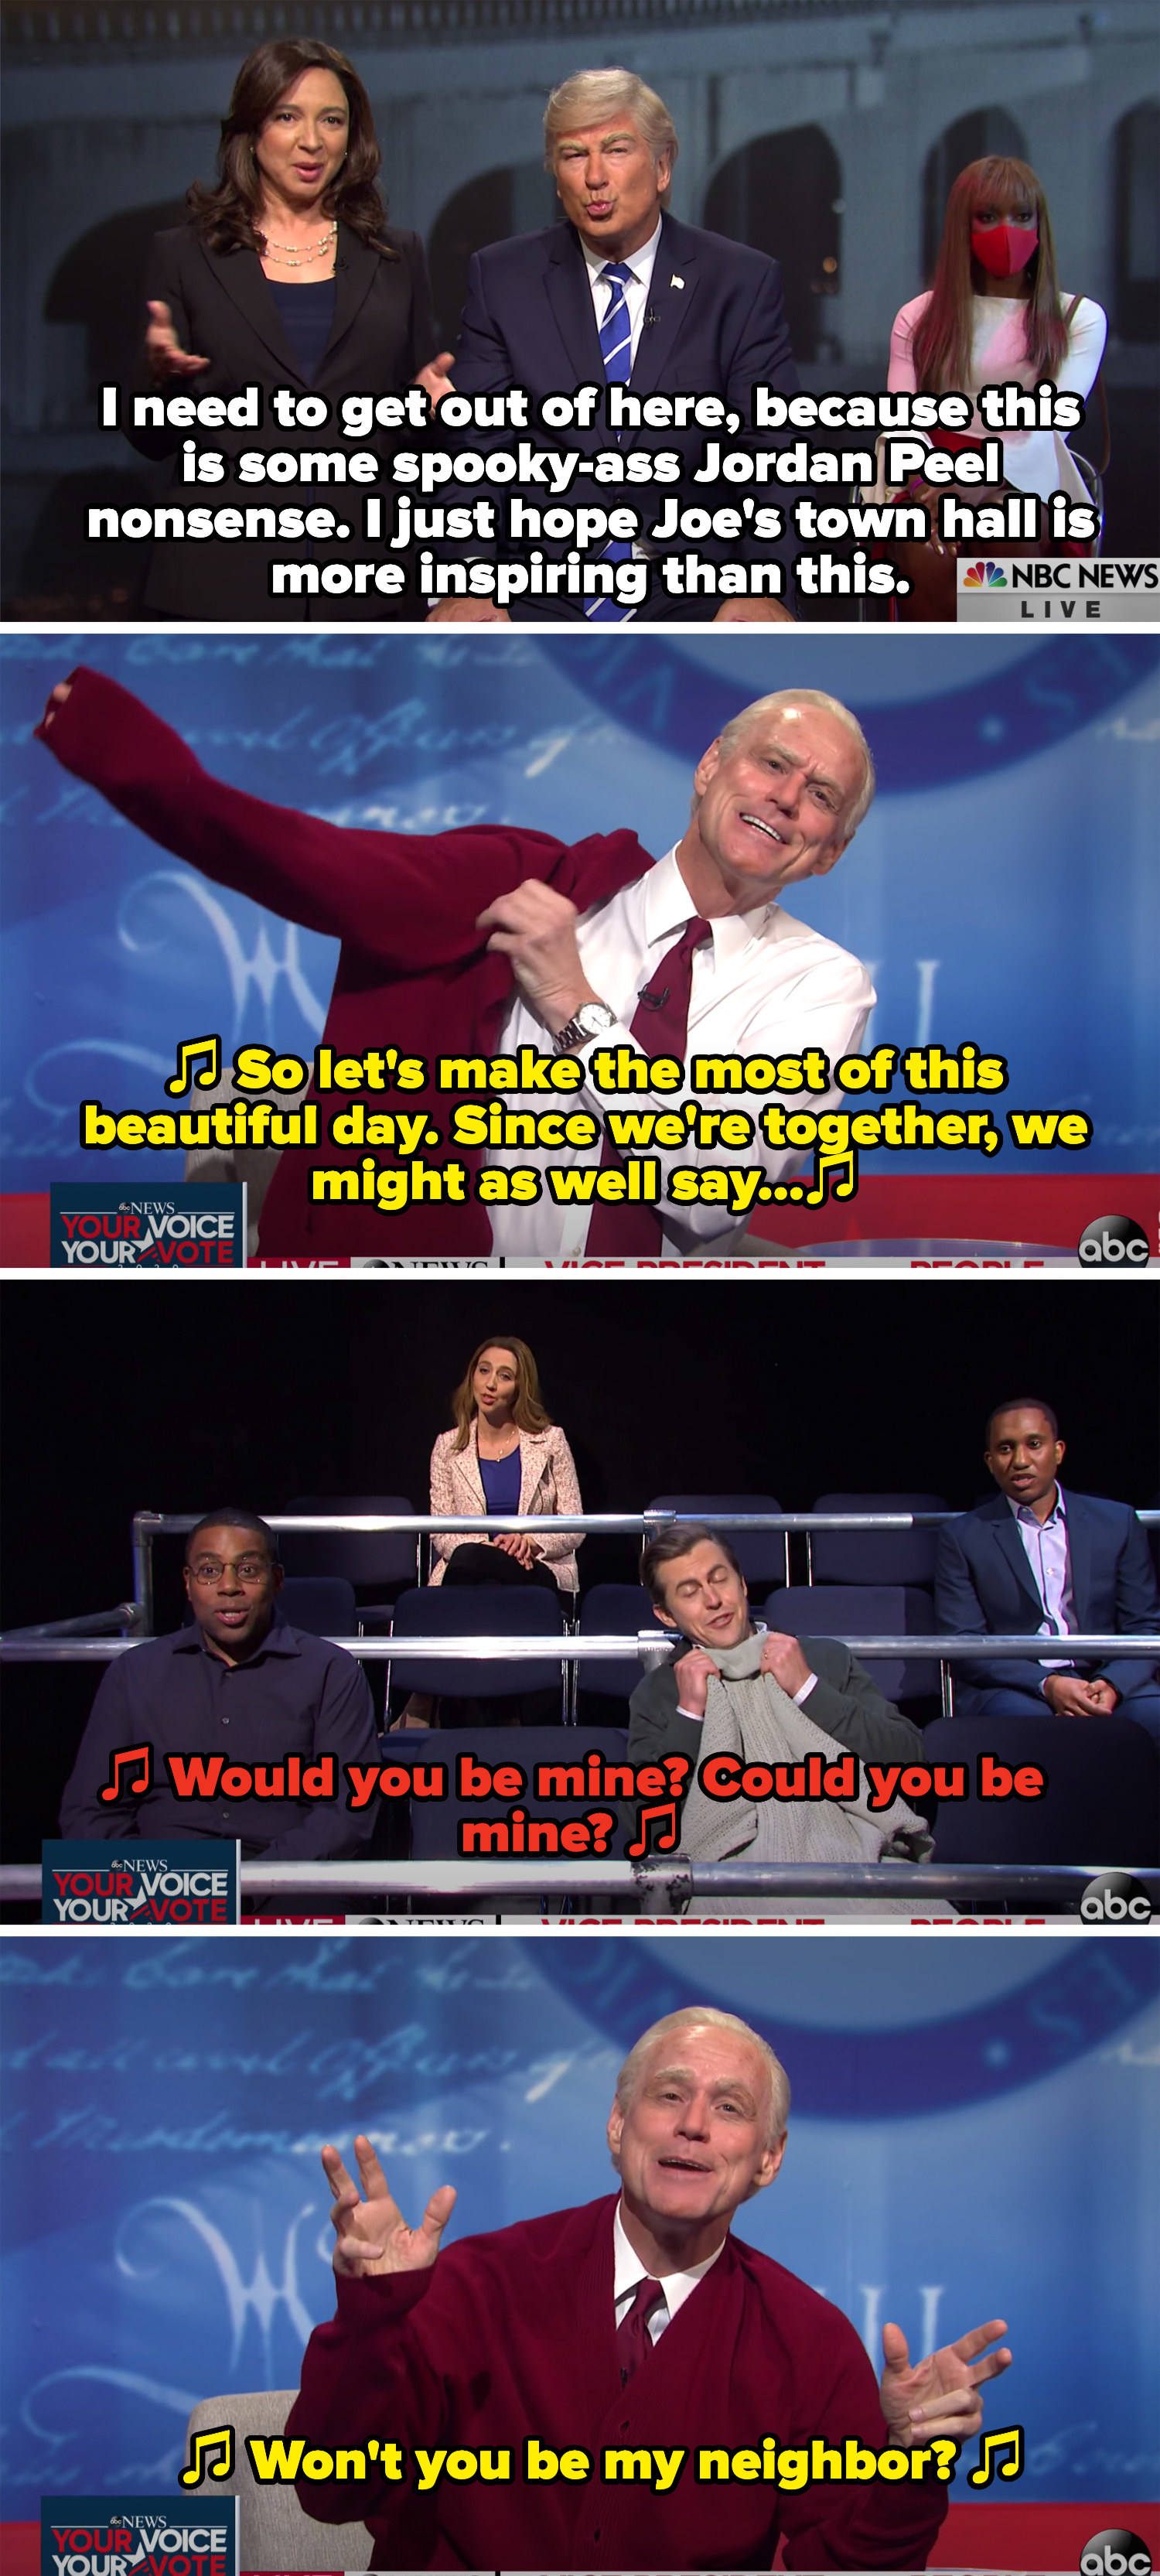 Joe dressed as Mister Rogers and the audience singing the theme song